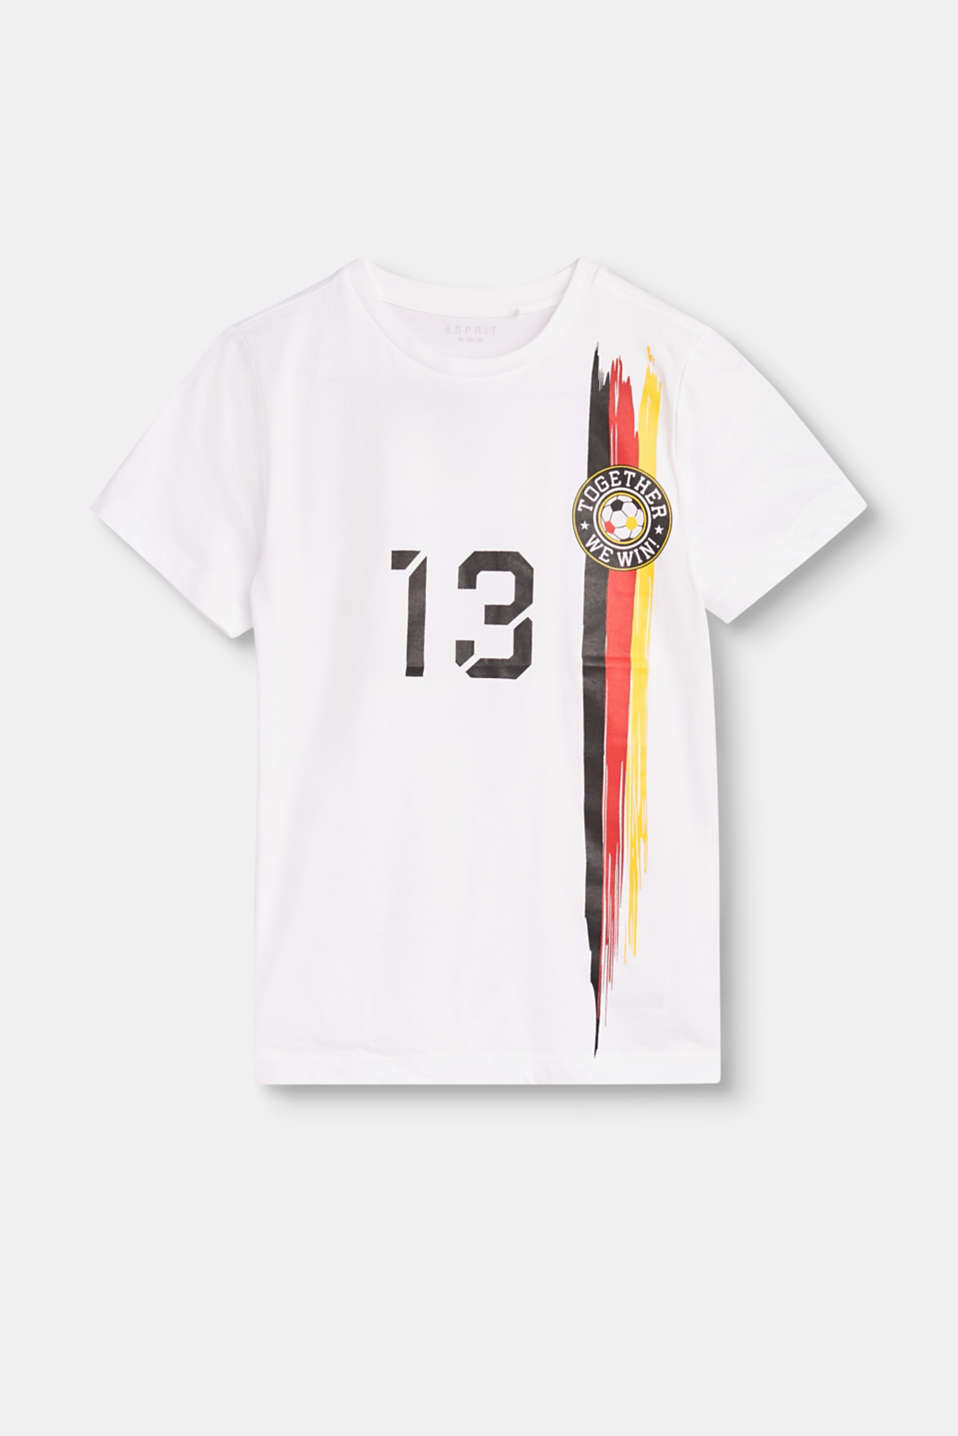 The ultimate fan T-shirt for children in a football shirt look with different national colours and a number print